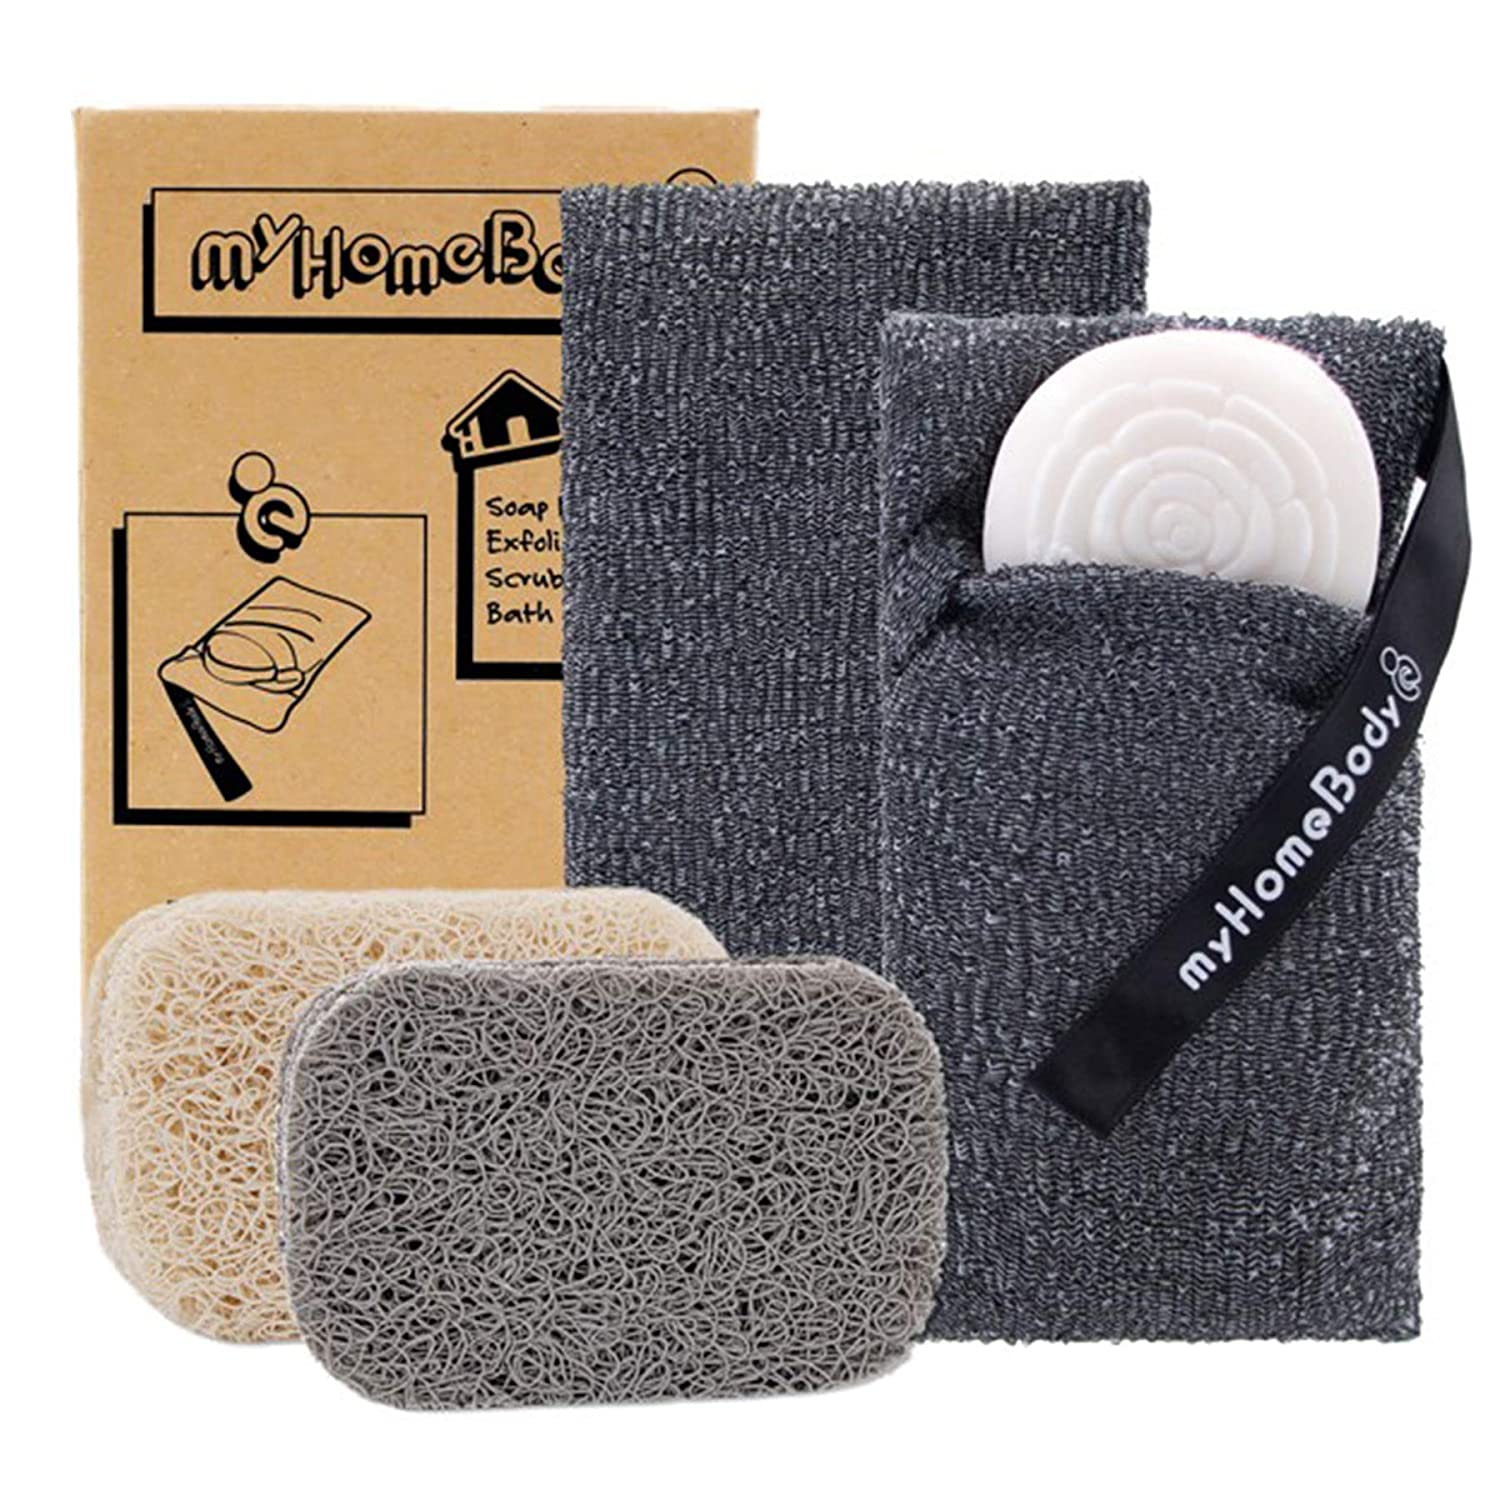 Soap Saver Pouch | Exfoliating Sponge Soap Pocket Body Exfoliator Sponges for Bath or Shower | Body Scrubber for Large Bar Soap or Leftover Soap Bits | 2 Pack + 2 Piece Soap Lift Soap Saver Pads: Beauty